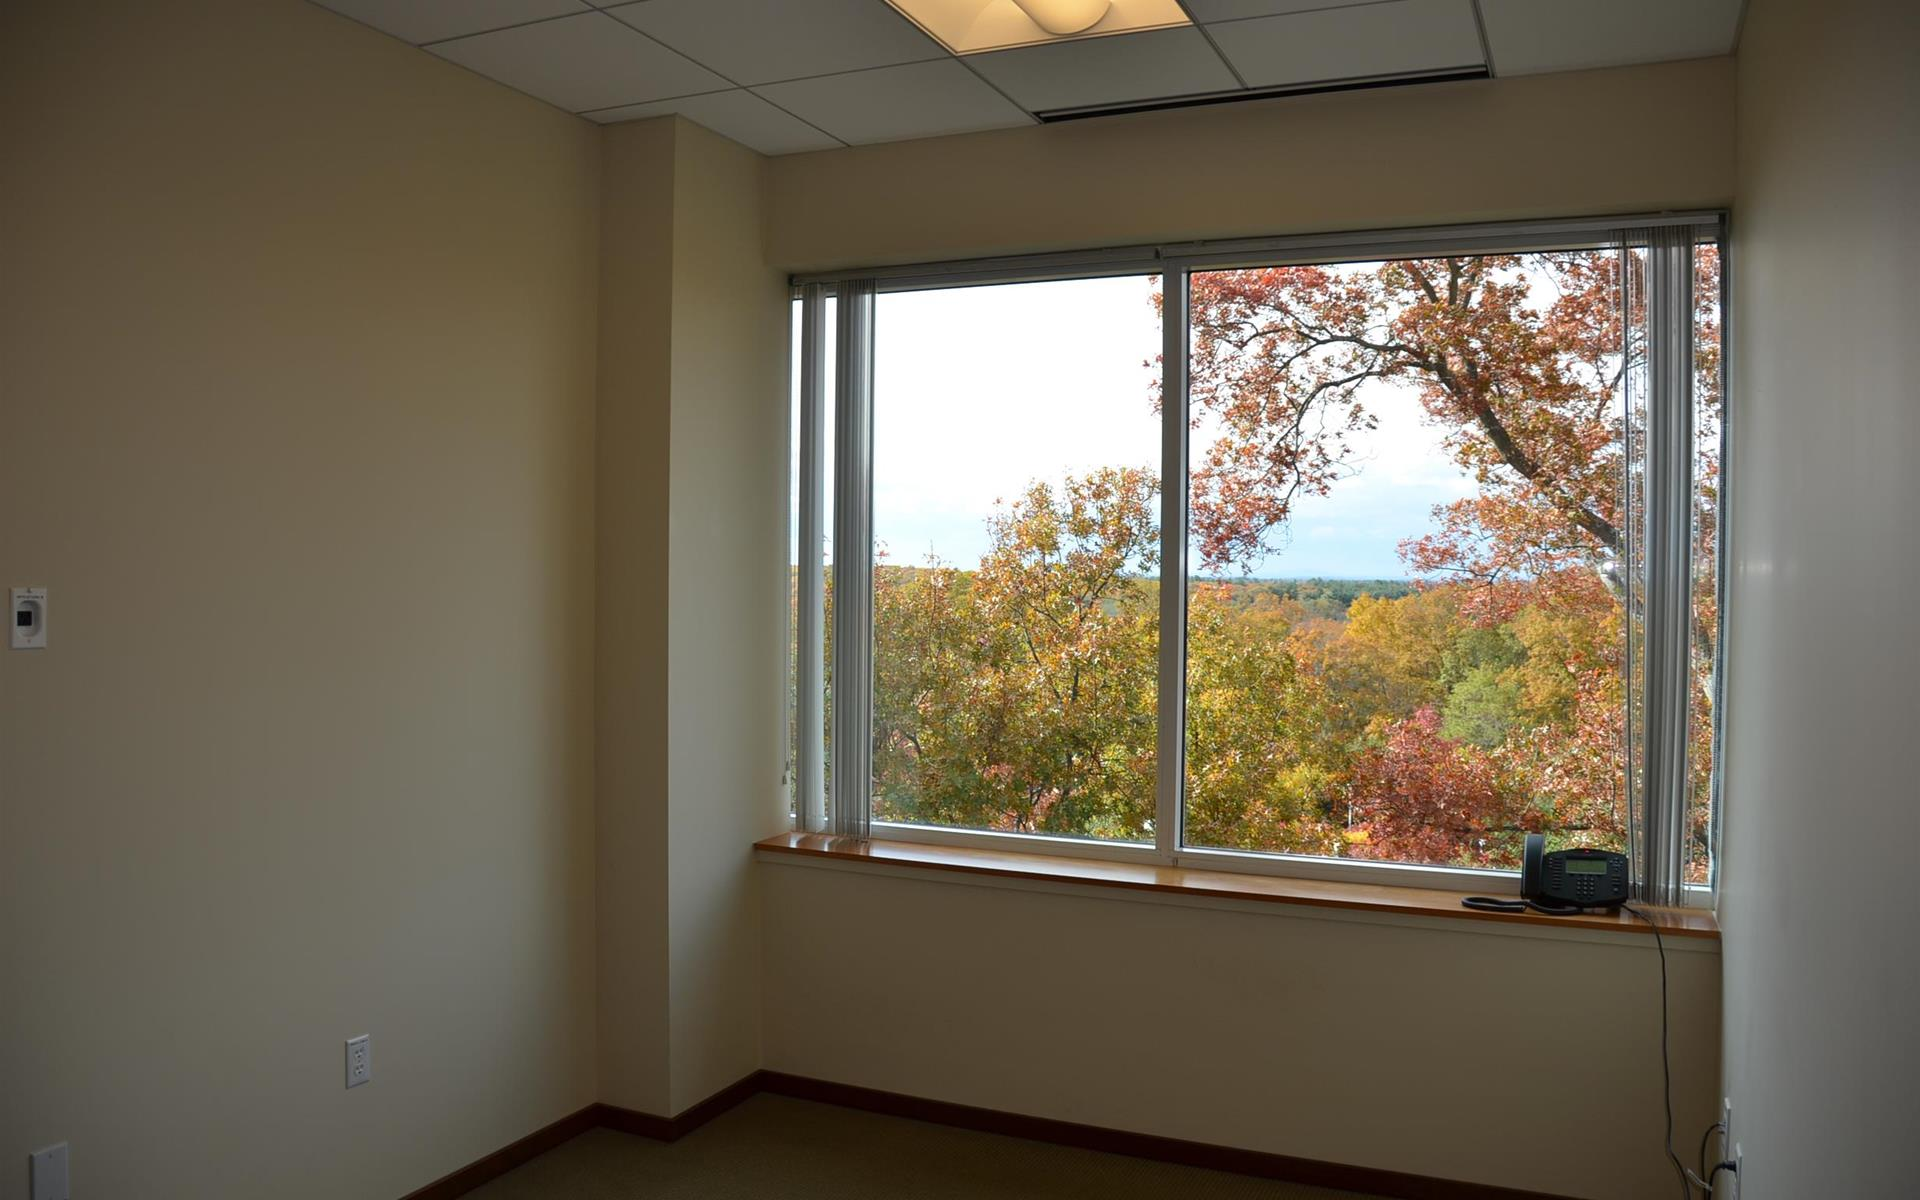 880 Winter Street - Waltham, MA - Private Office | Office 1